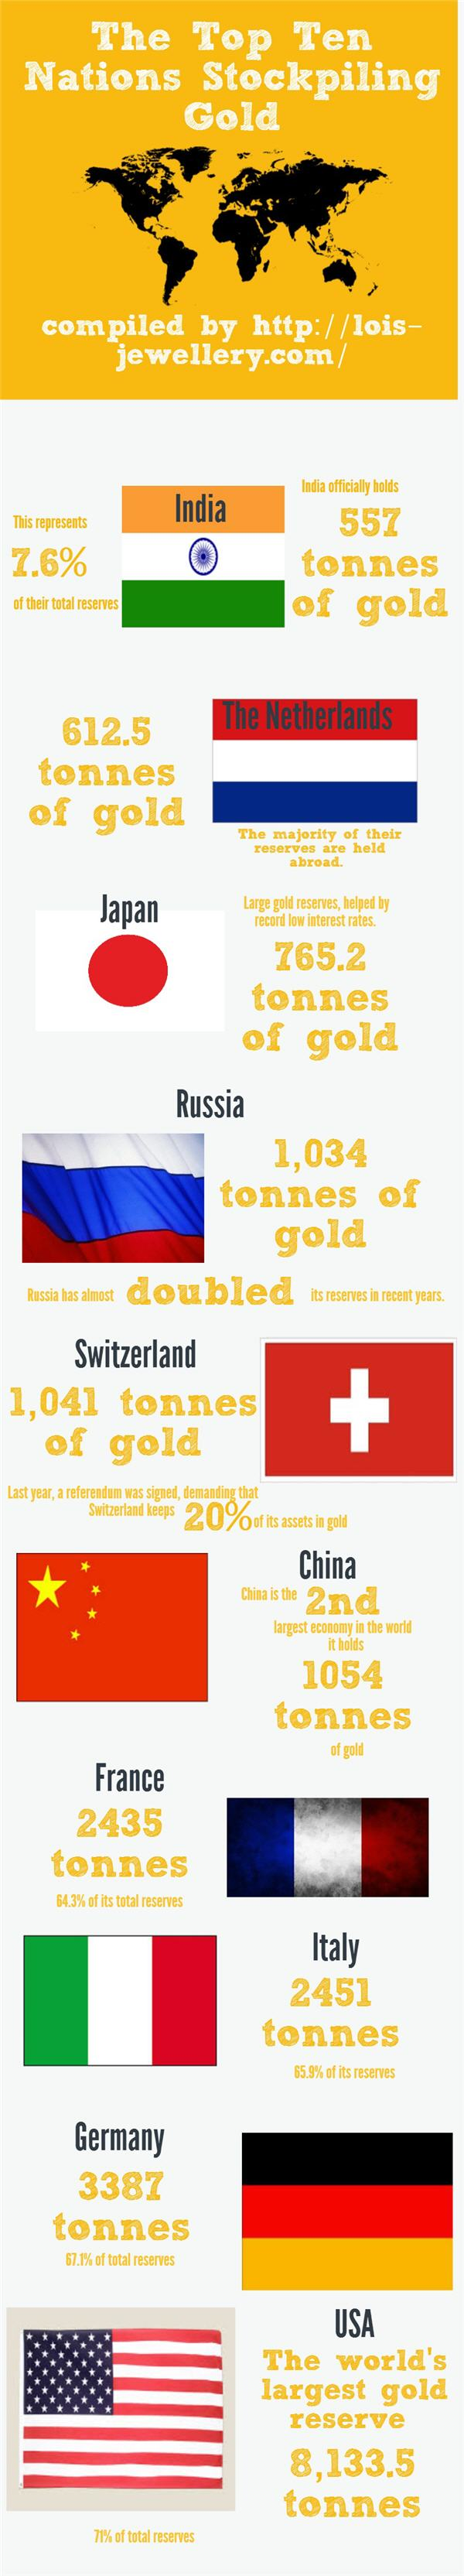 INFOGRAPHIC: The top ten nations stockpiling gold